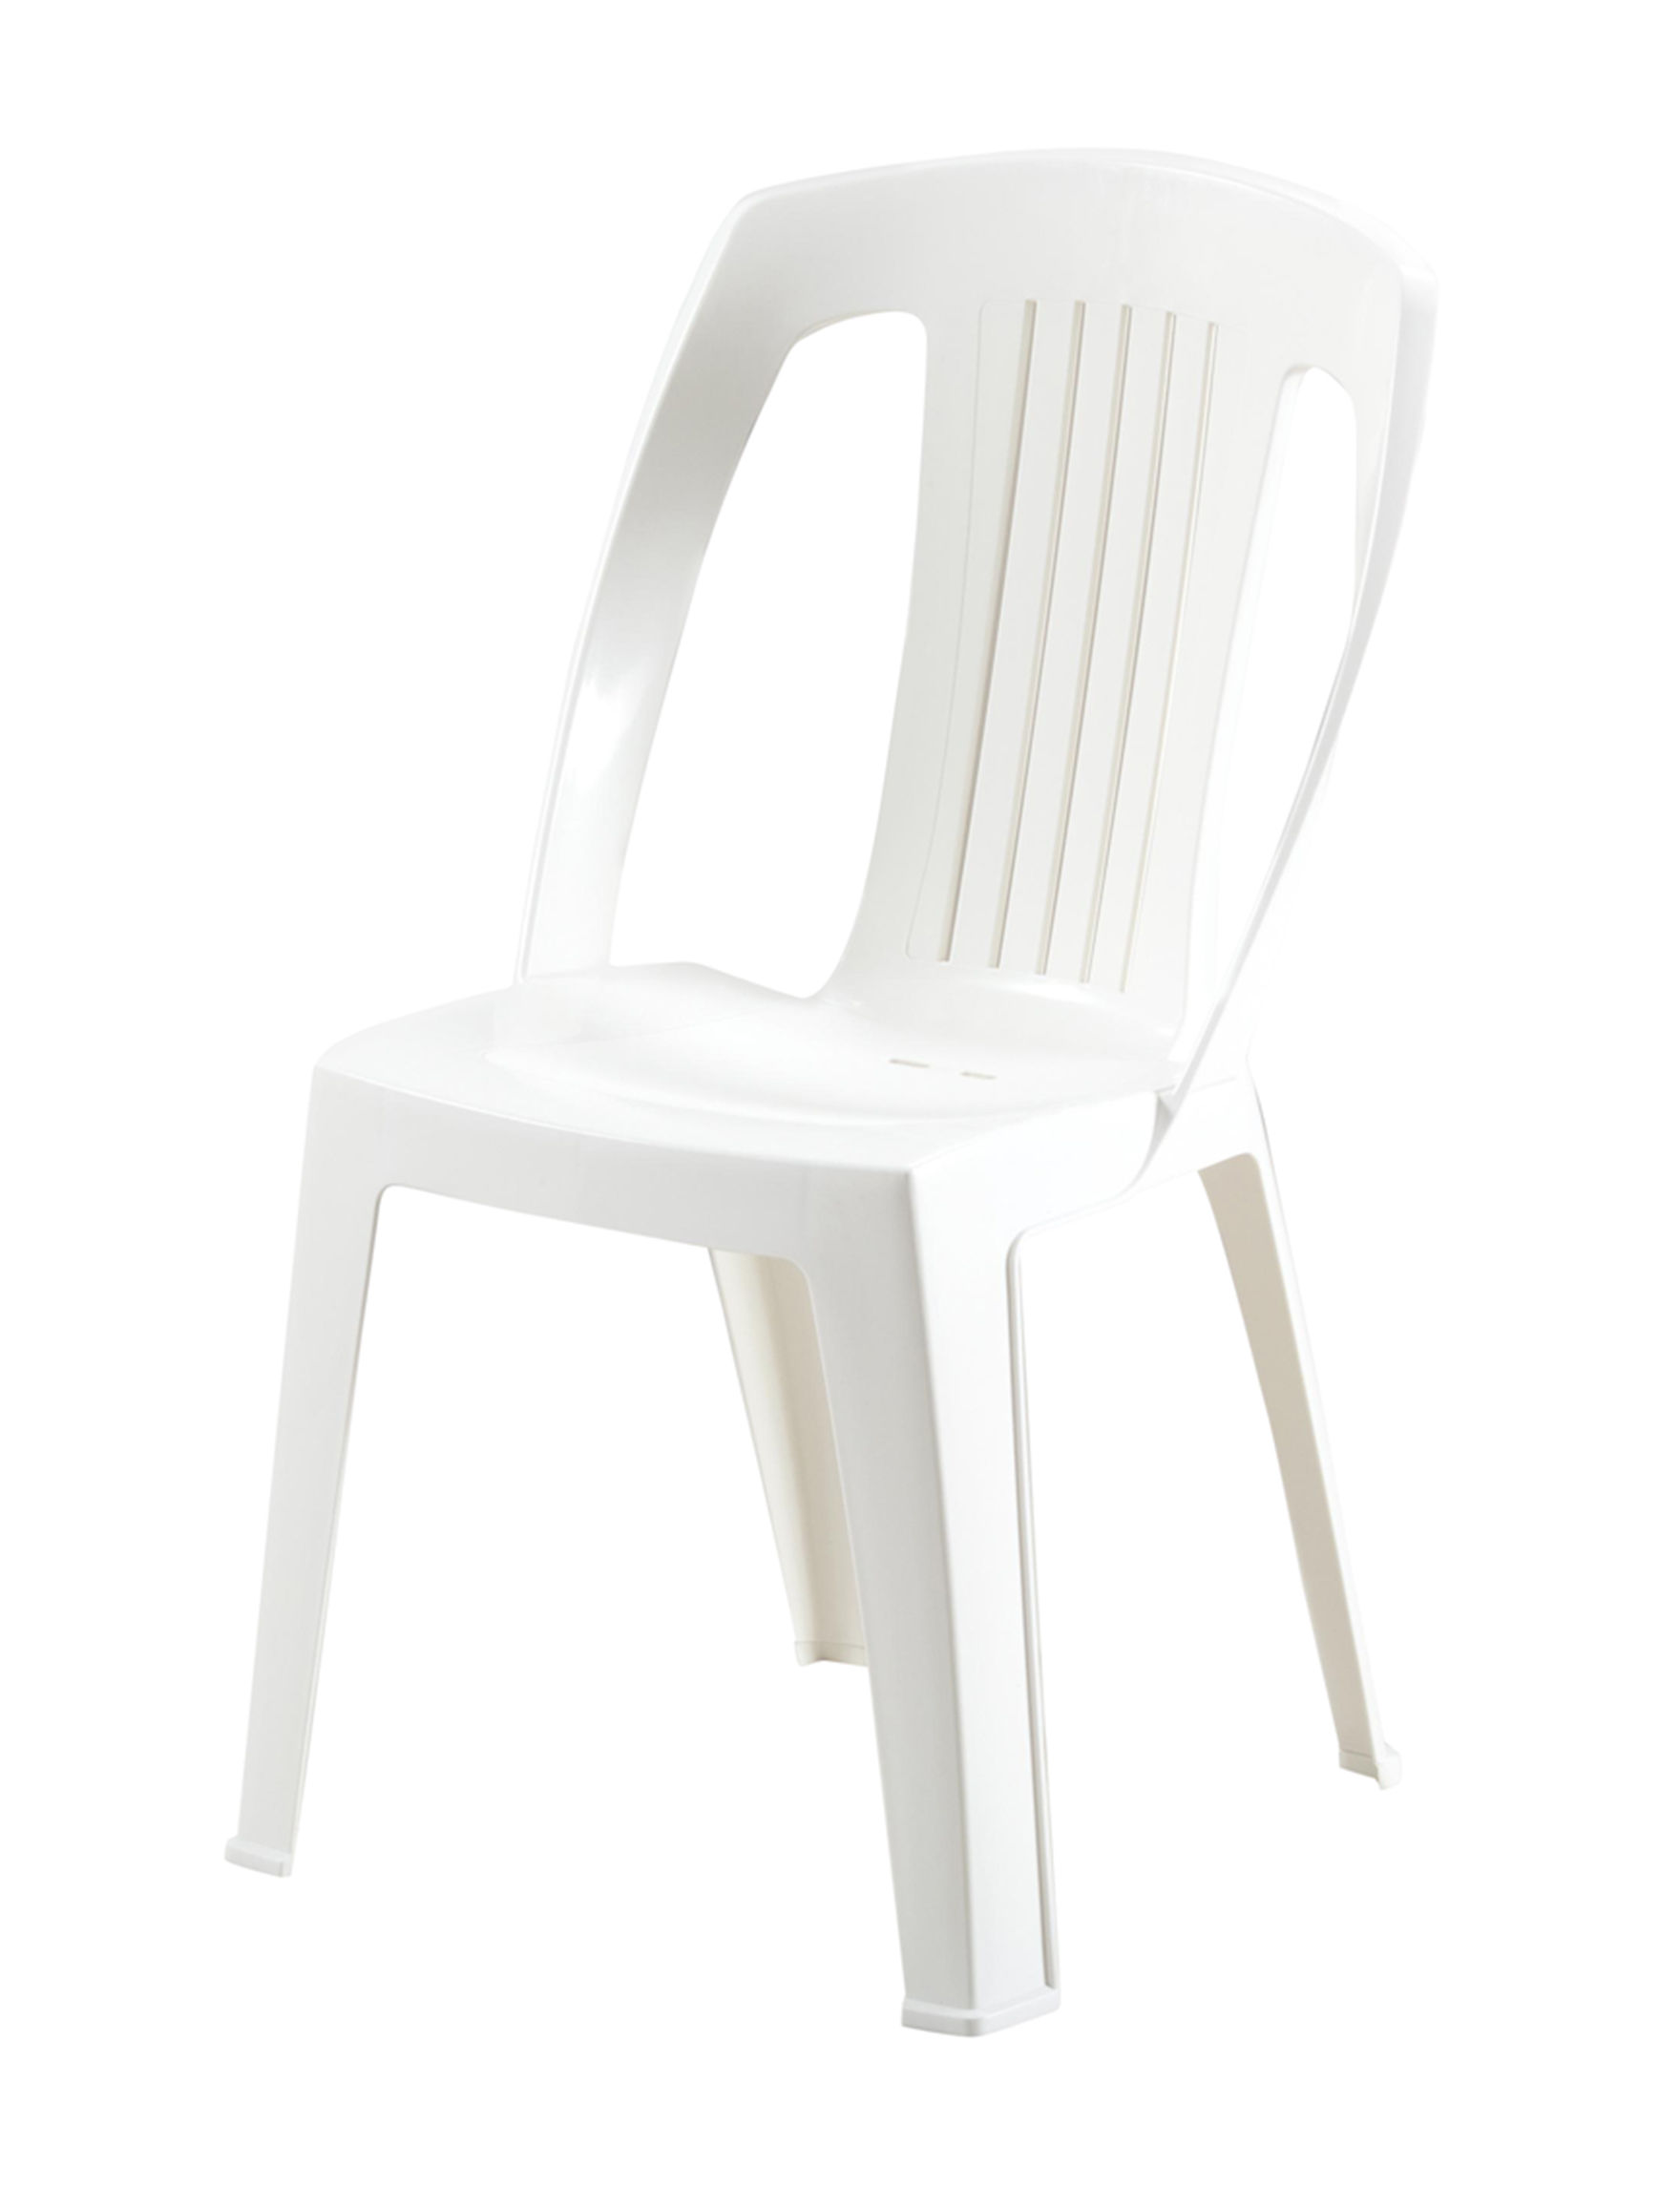 Thy-Hom White Patio & Outdoor Furniture